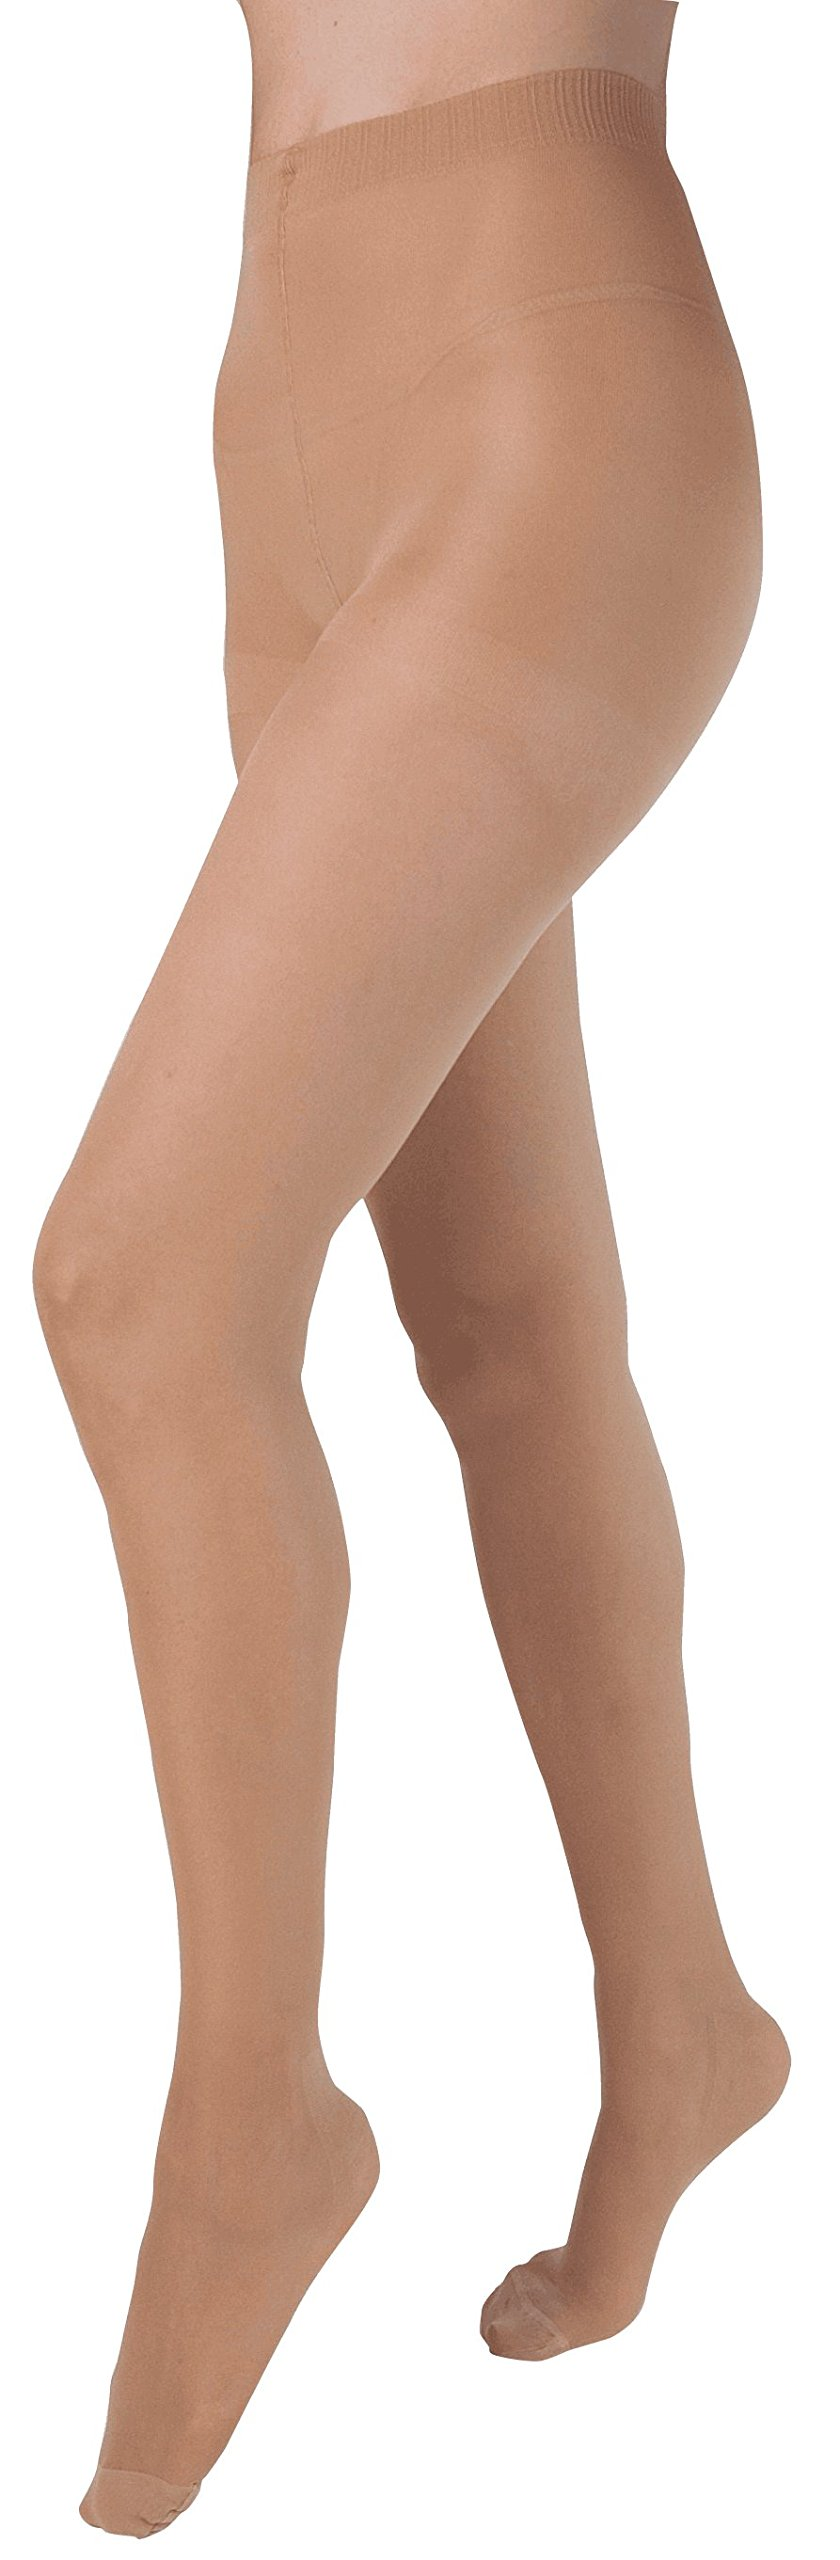 Health Support Vascular Hosiery 15-20 mmHg, Panty Hose, Sheer, Beige, Regular Size A Part No. 121112A Qty 1